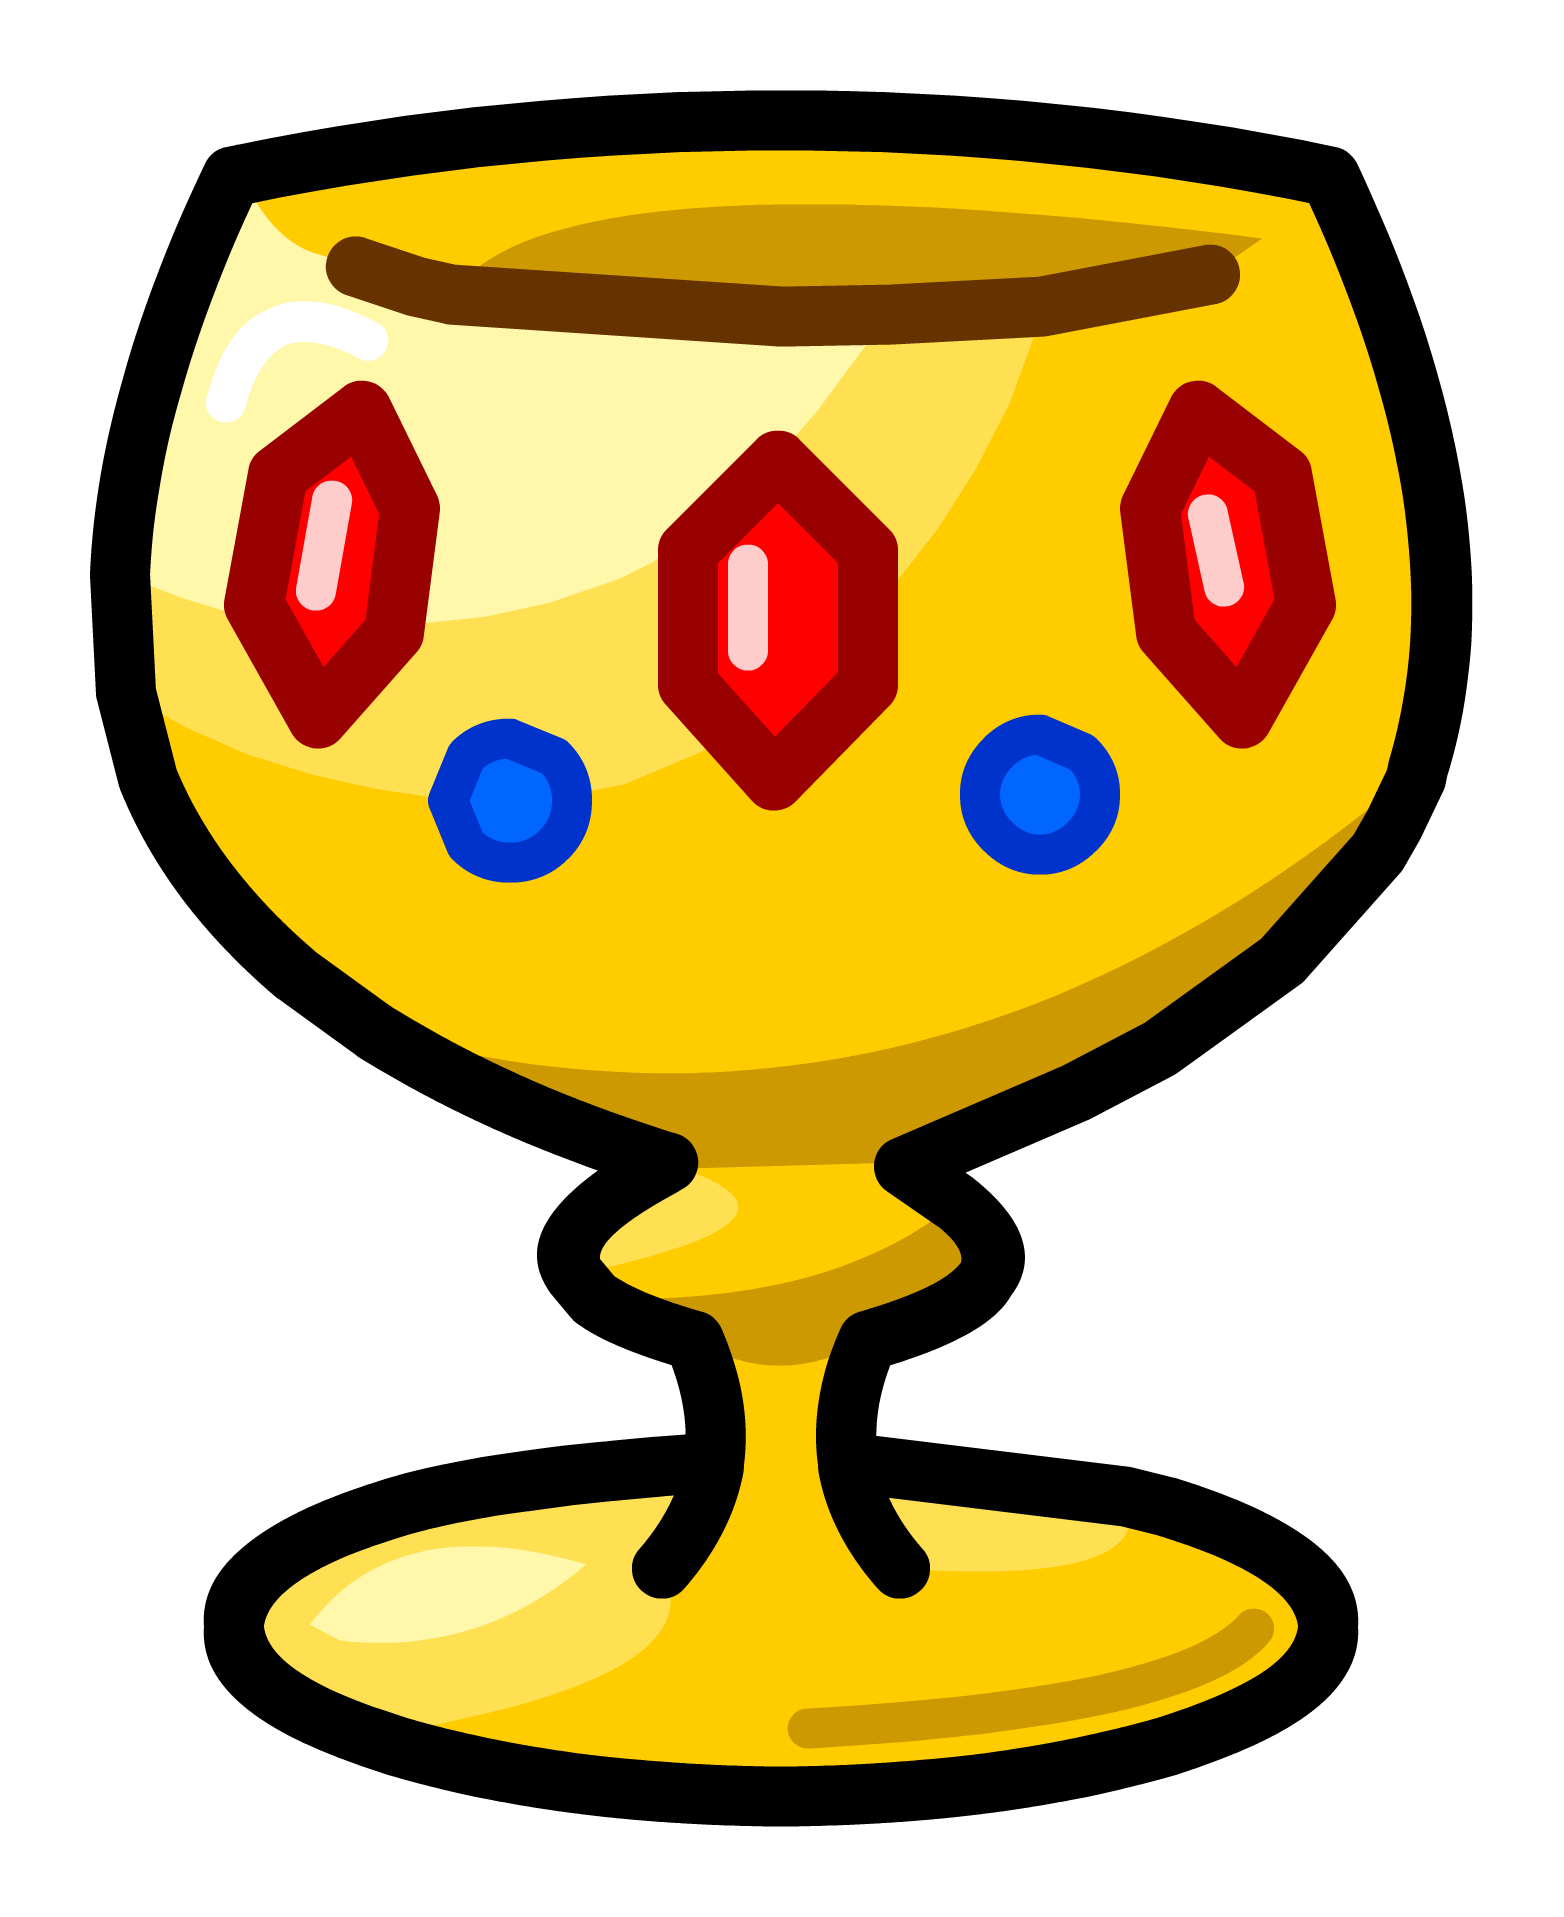 Goblet pencil and in. Cup clipart medieval